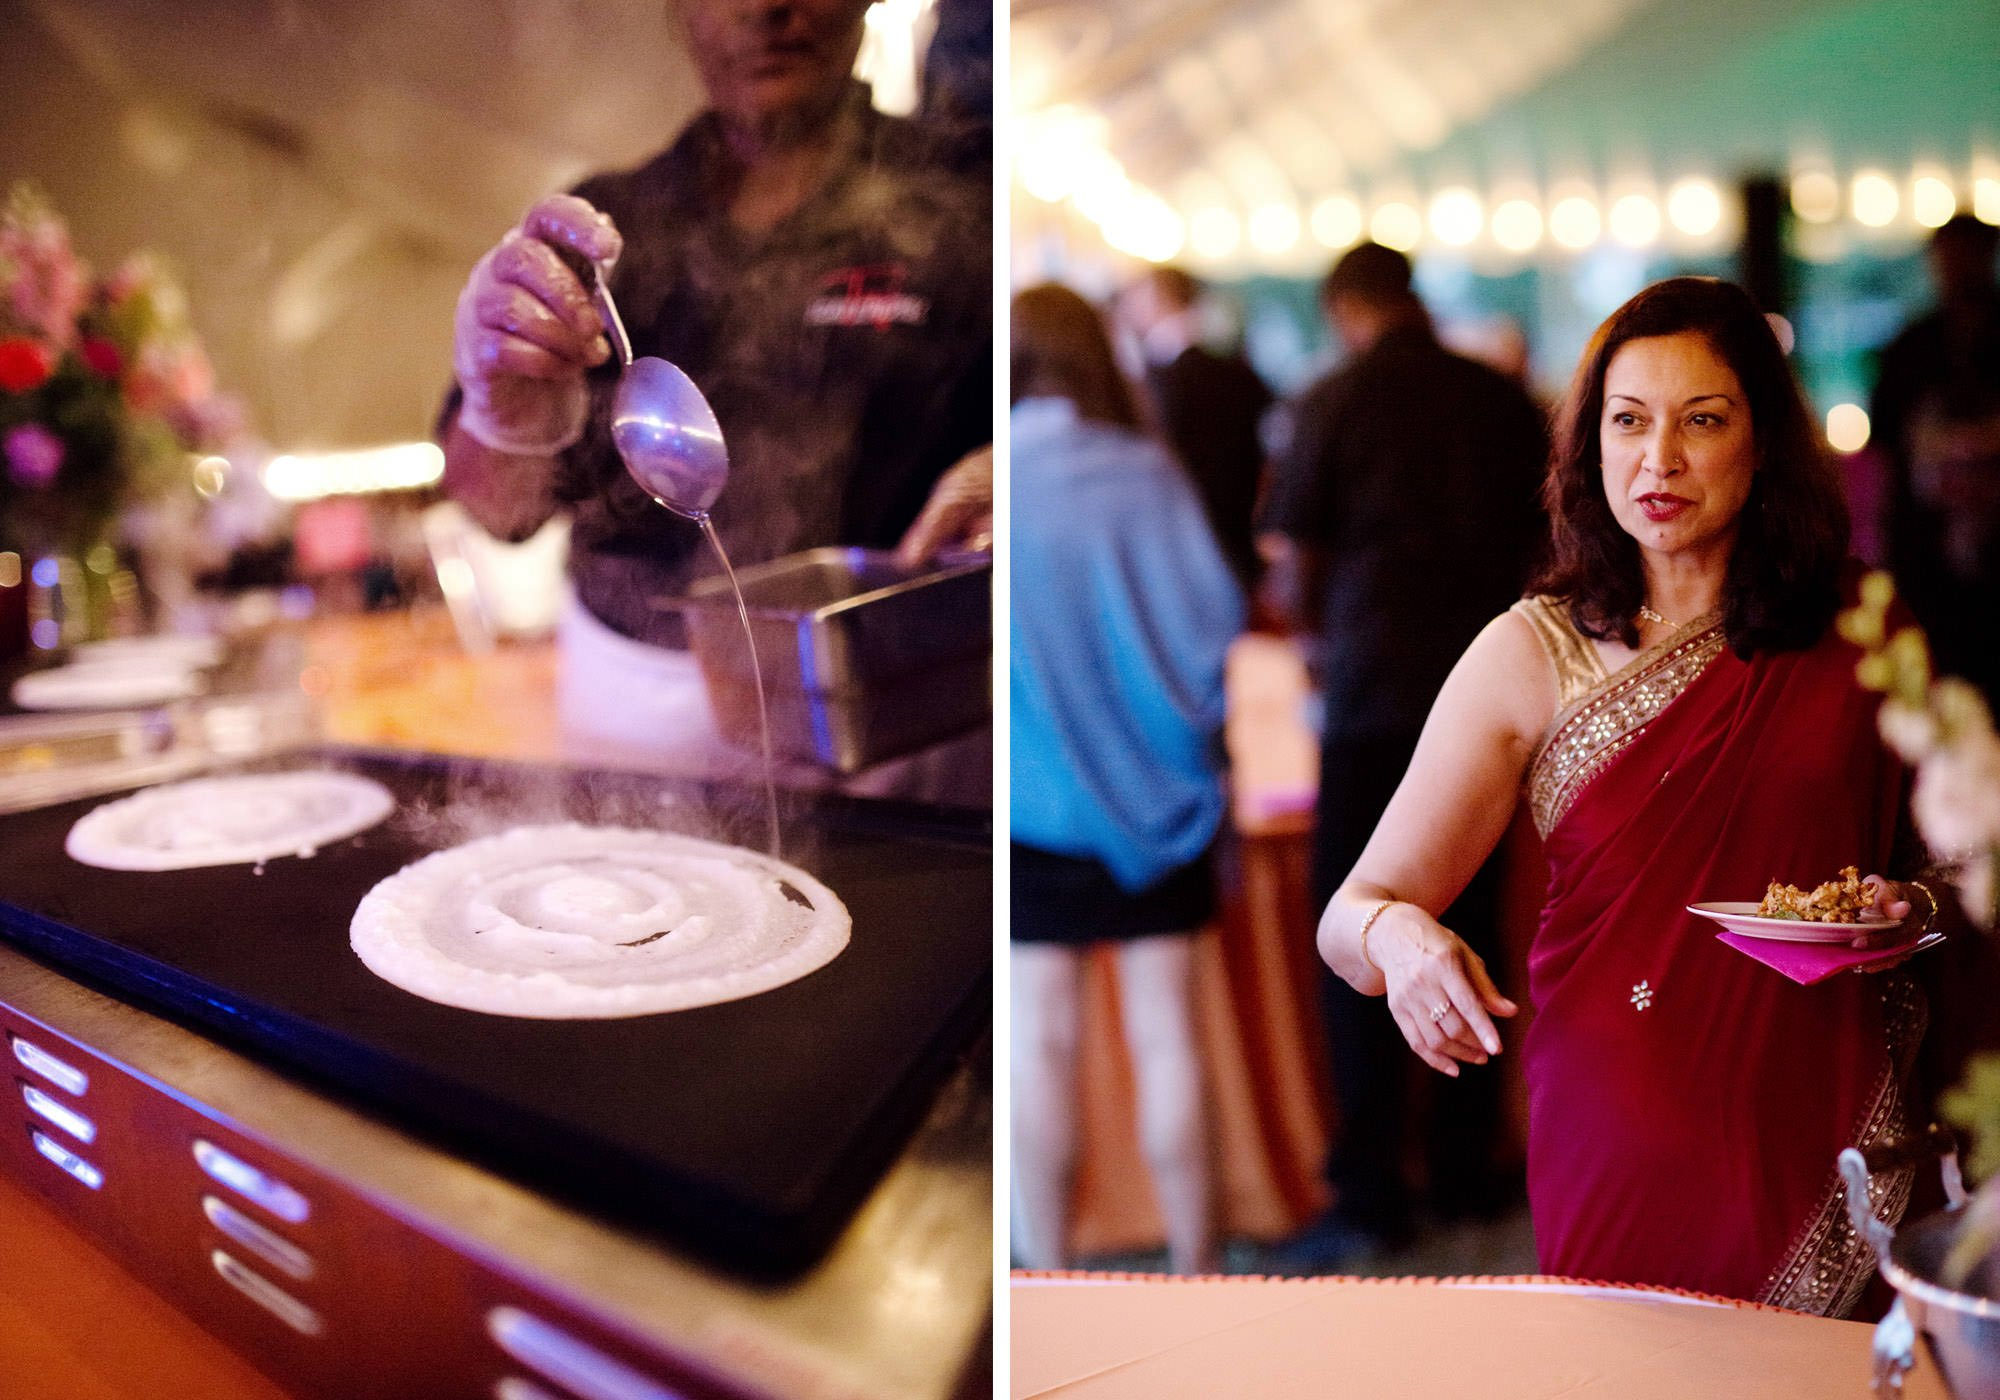 Indian food is prepared during this Doukenie Winery wedding.